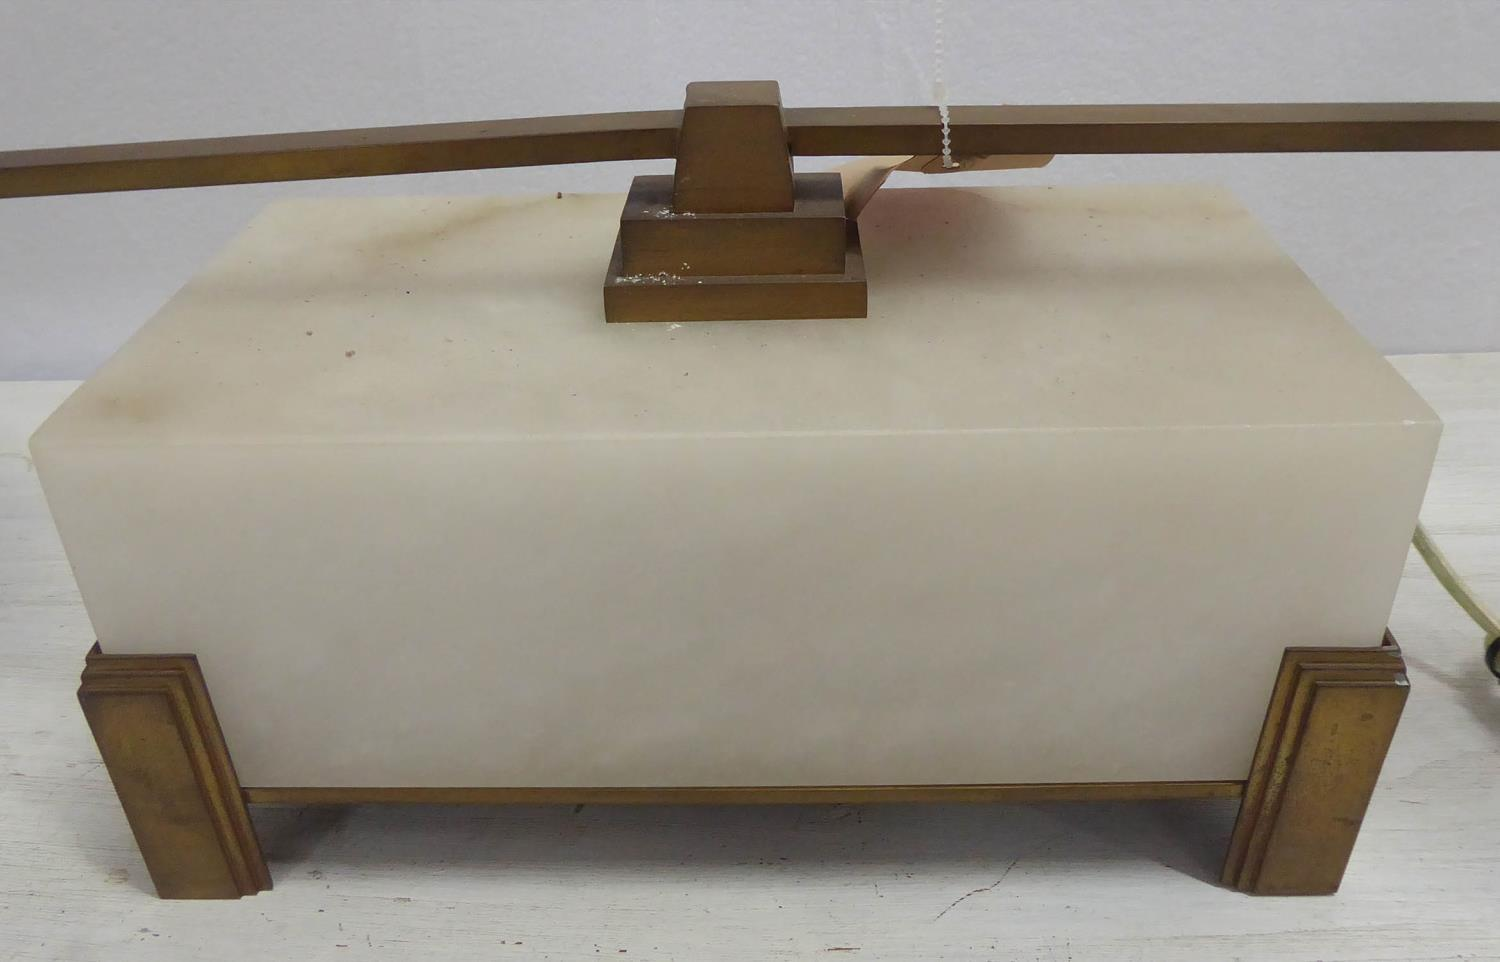 BAKER FURNITURE LIBRARY STEM LAMP BY BILL SOFIELD, with shades, 39cm H. - Image 3 of 5